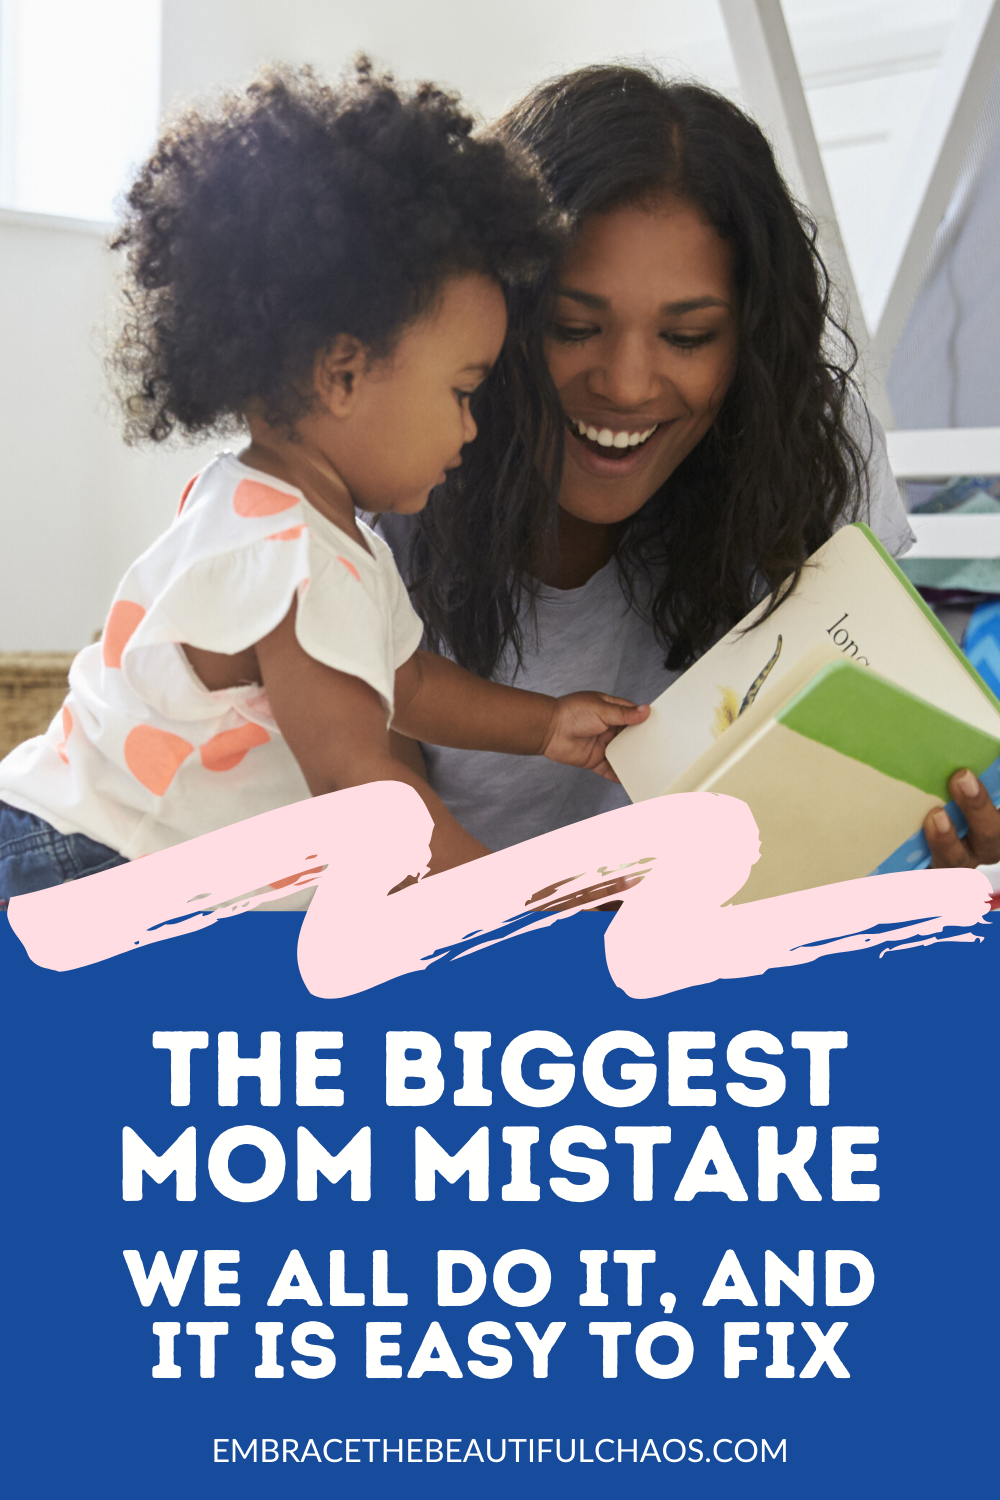 Don't worry, we all do it mom! But this one mistake is so easy to fix. Find out what it is, and how I realized I could change it (and be happier as a result). #momlife #parenting #parentingadvice #motherhood #tryingmybest